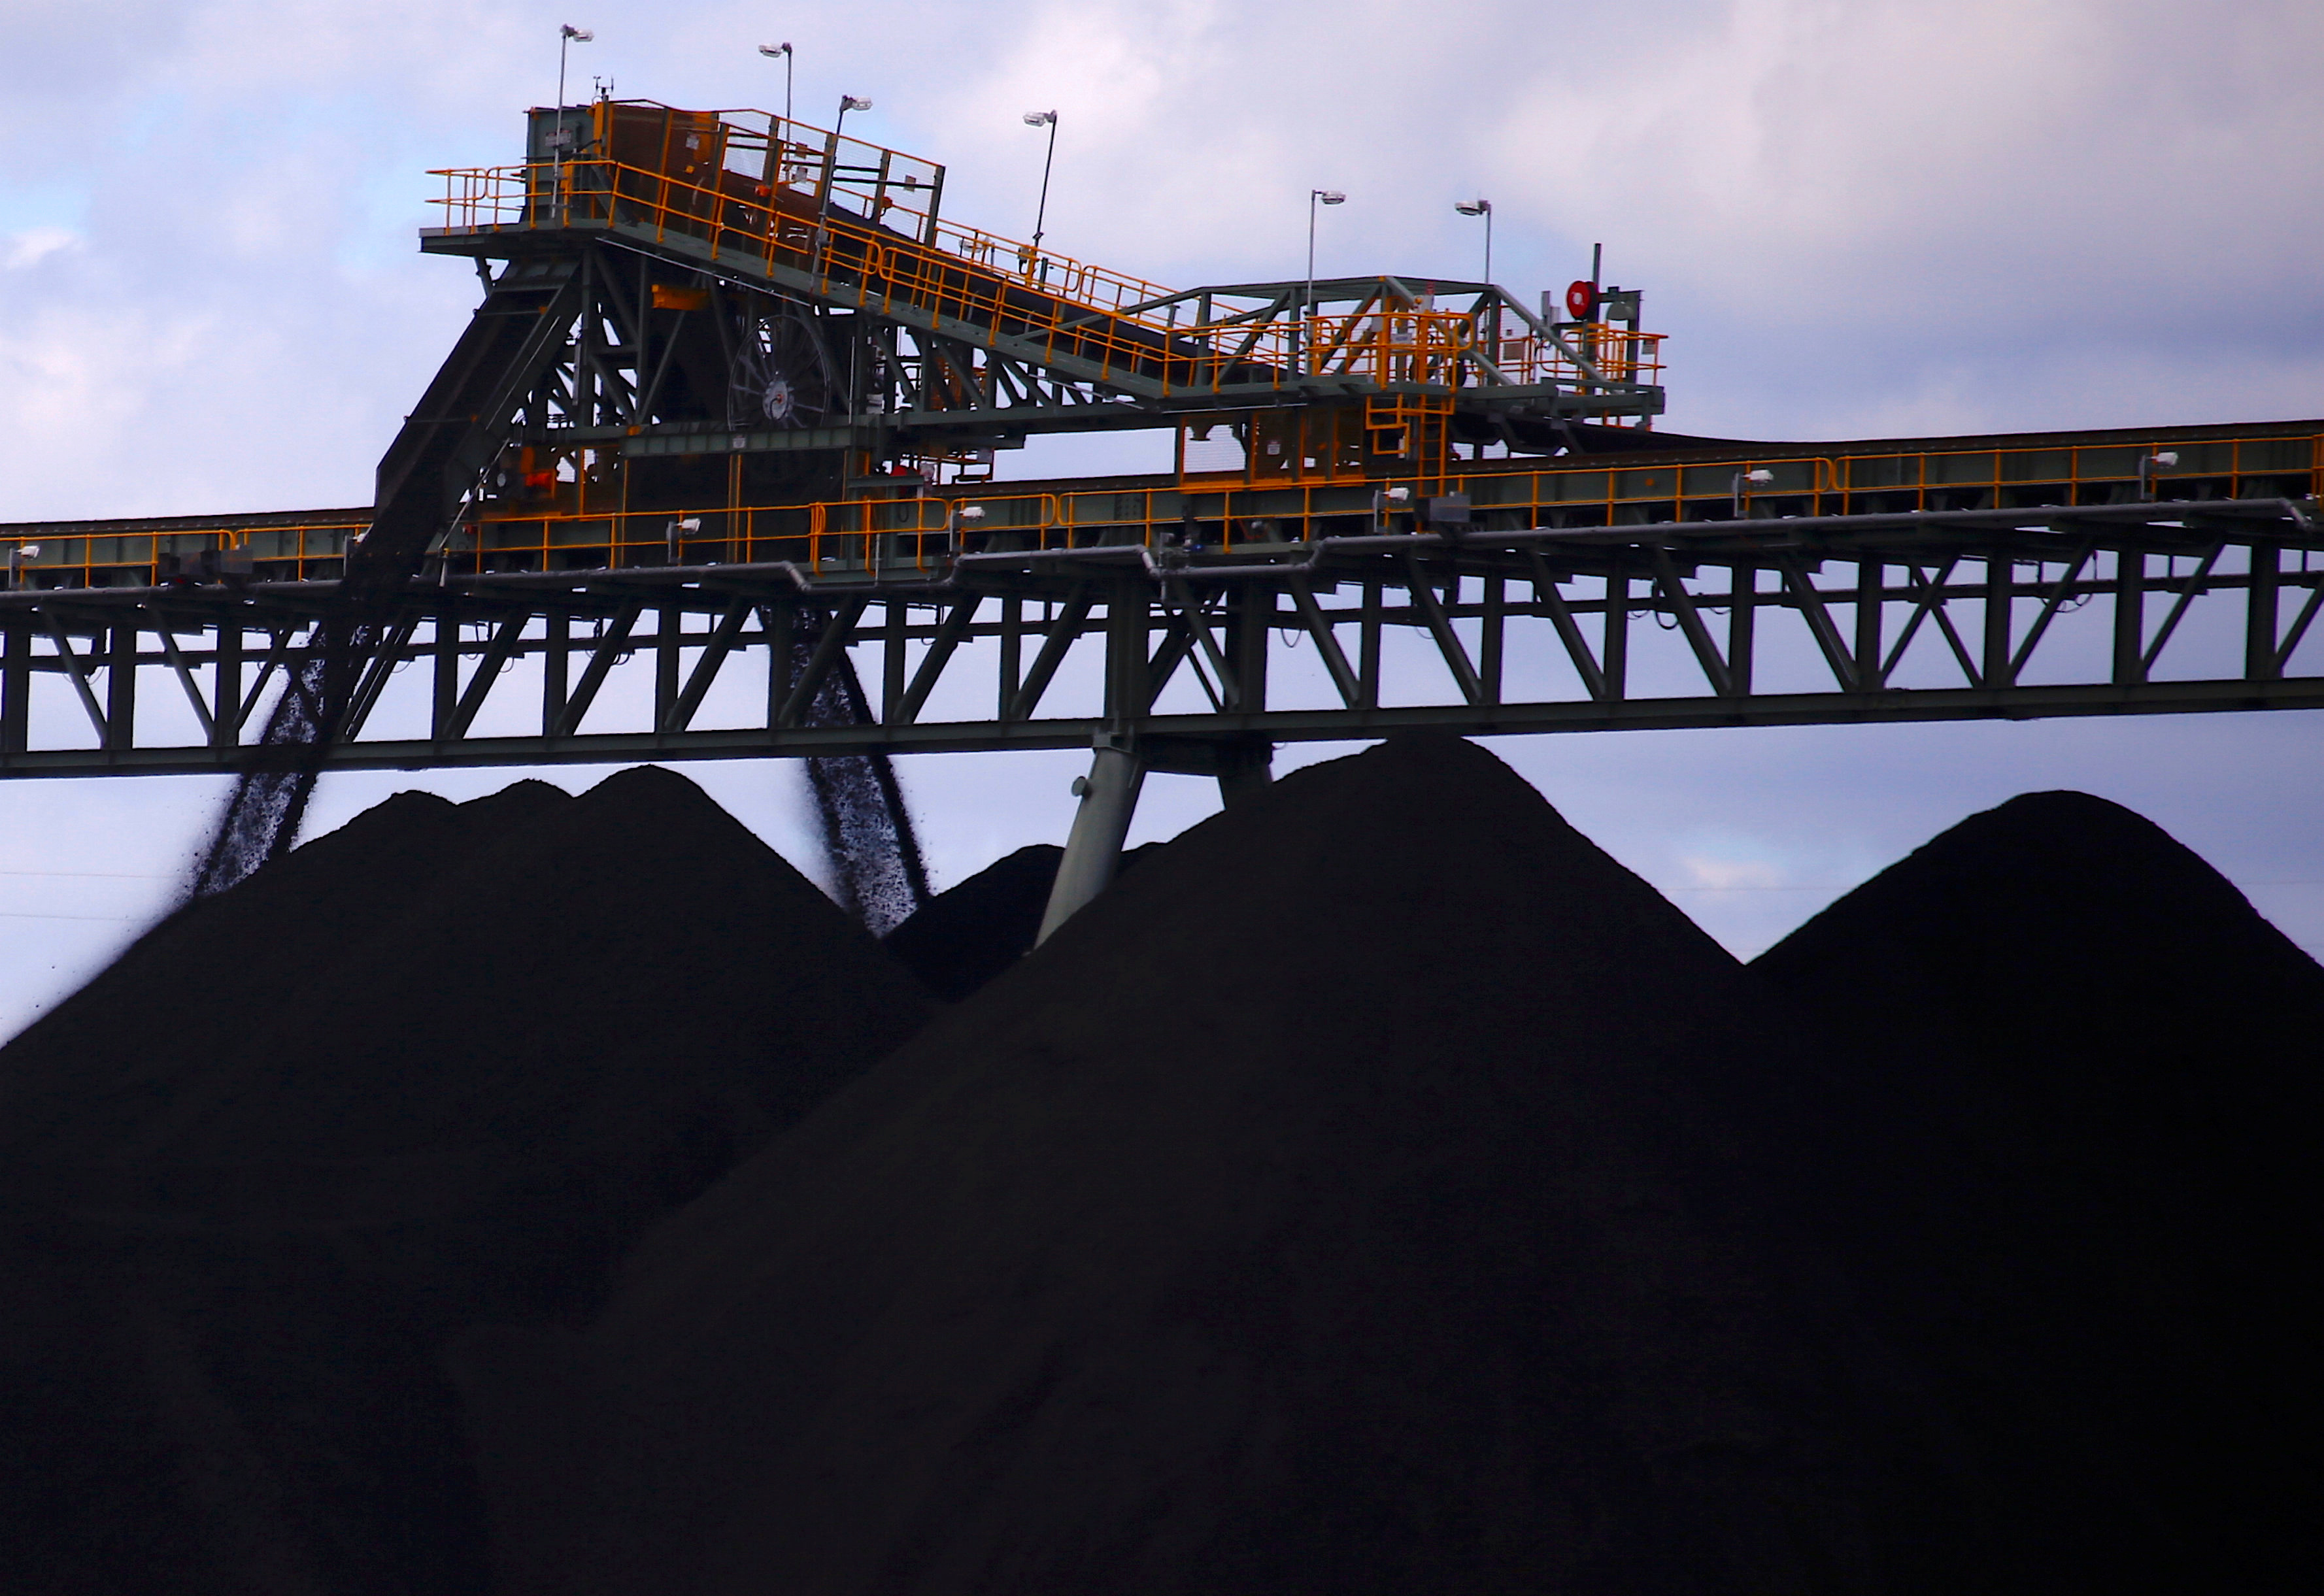 Australia should reduce emissions, coal mining: Pacific leaders